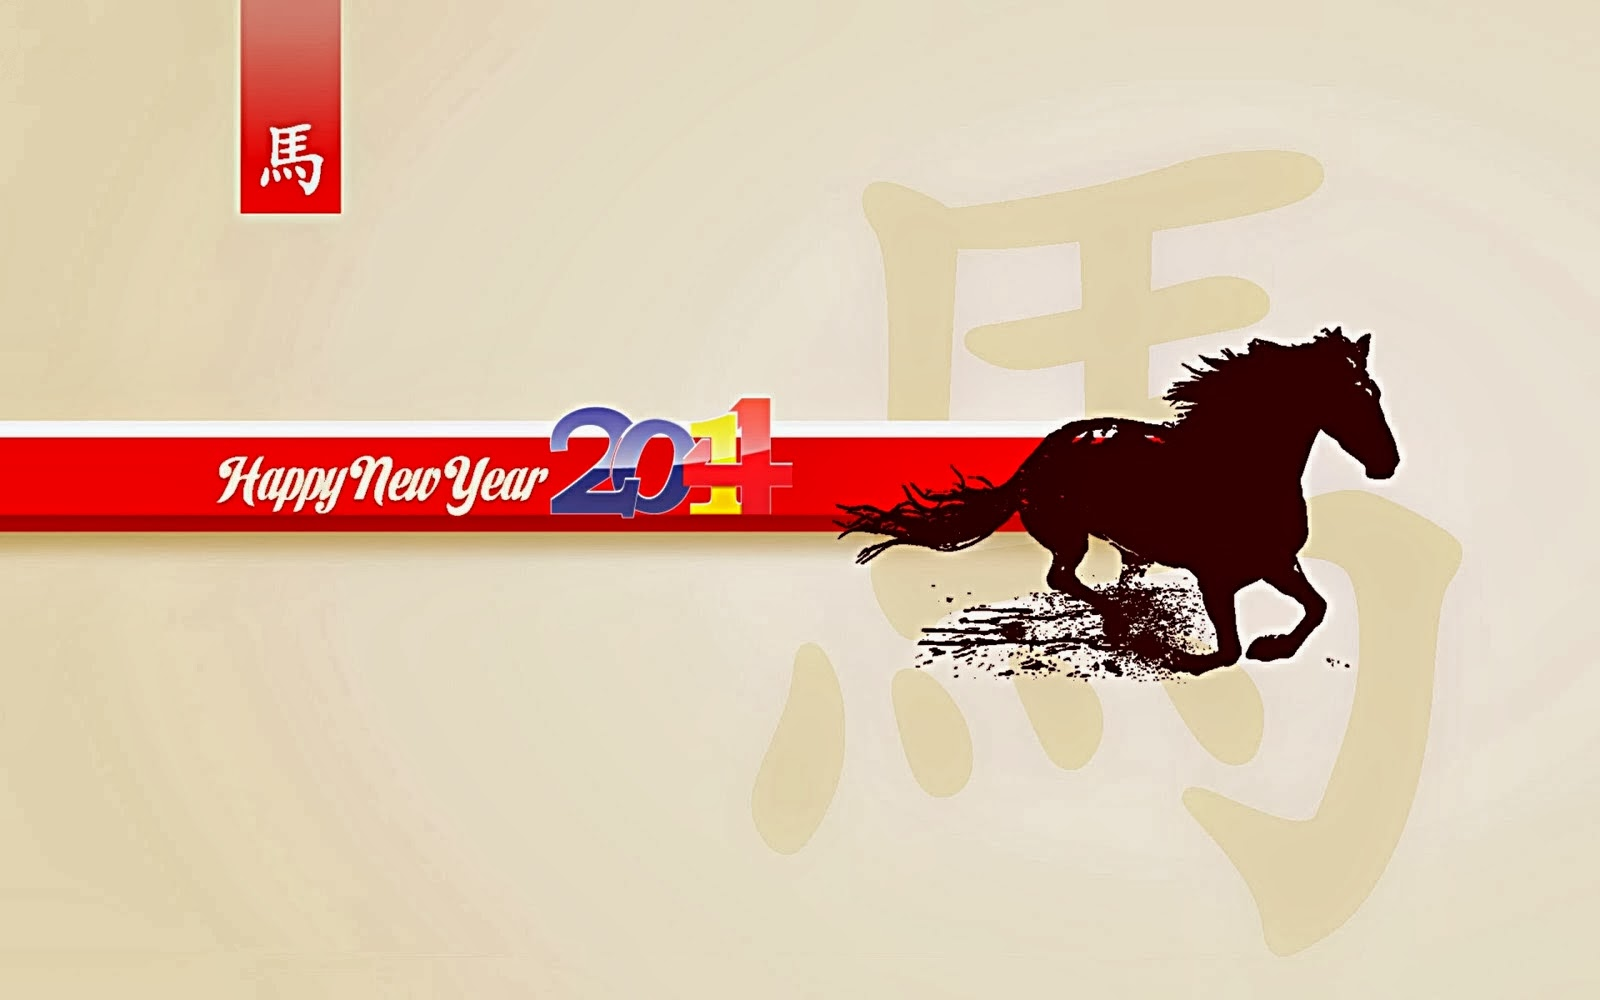 Happy Chinese New Year 2014 Wishes Quotes and Messages | Happiness Style